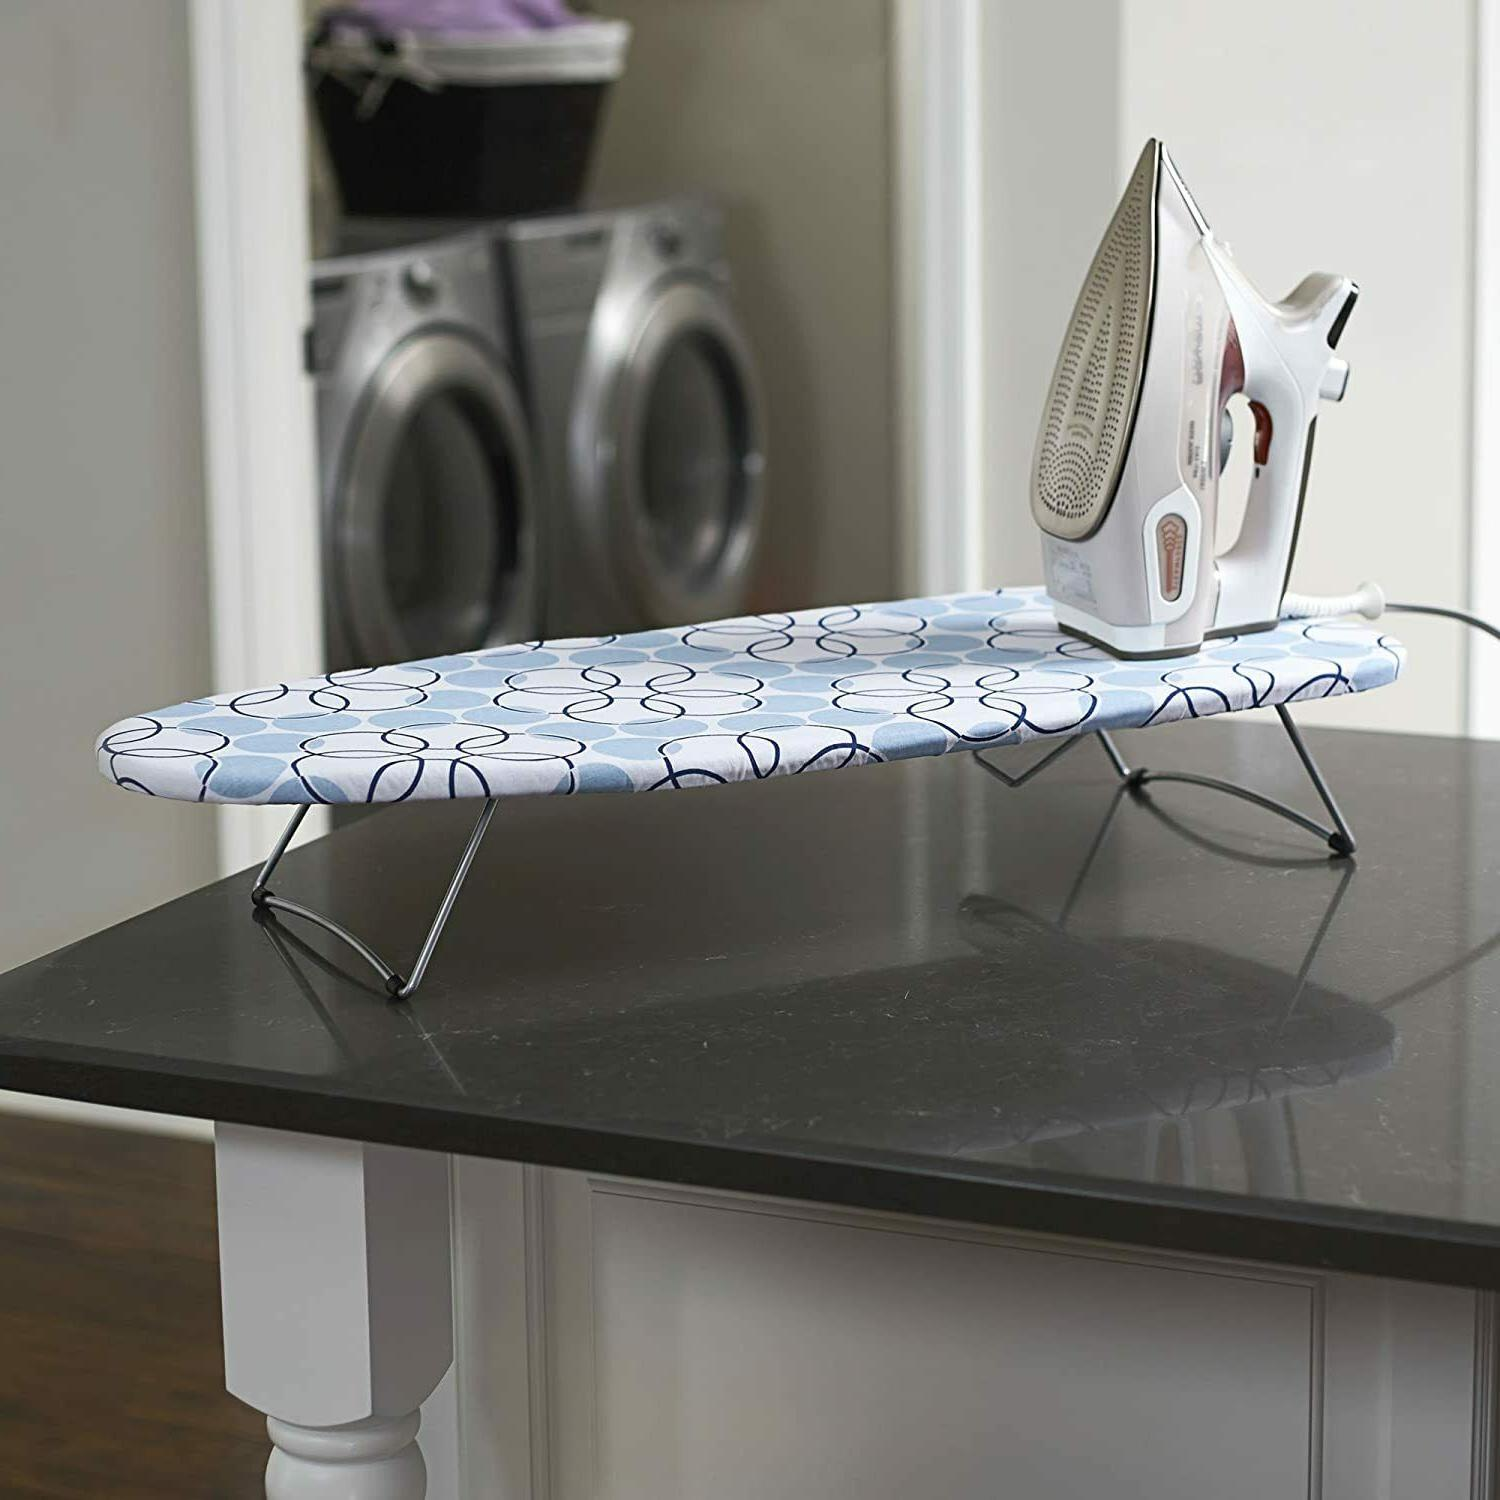 Household Essentials 122101 Small Tabletop Ironing Board wit